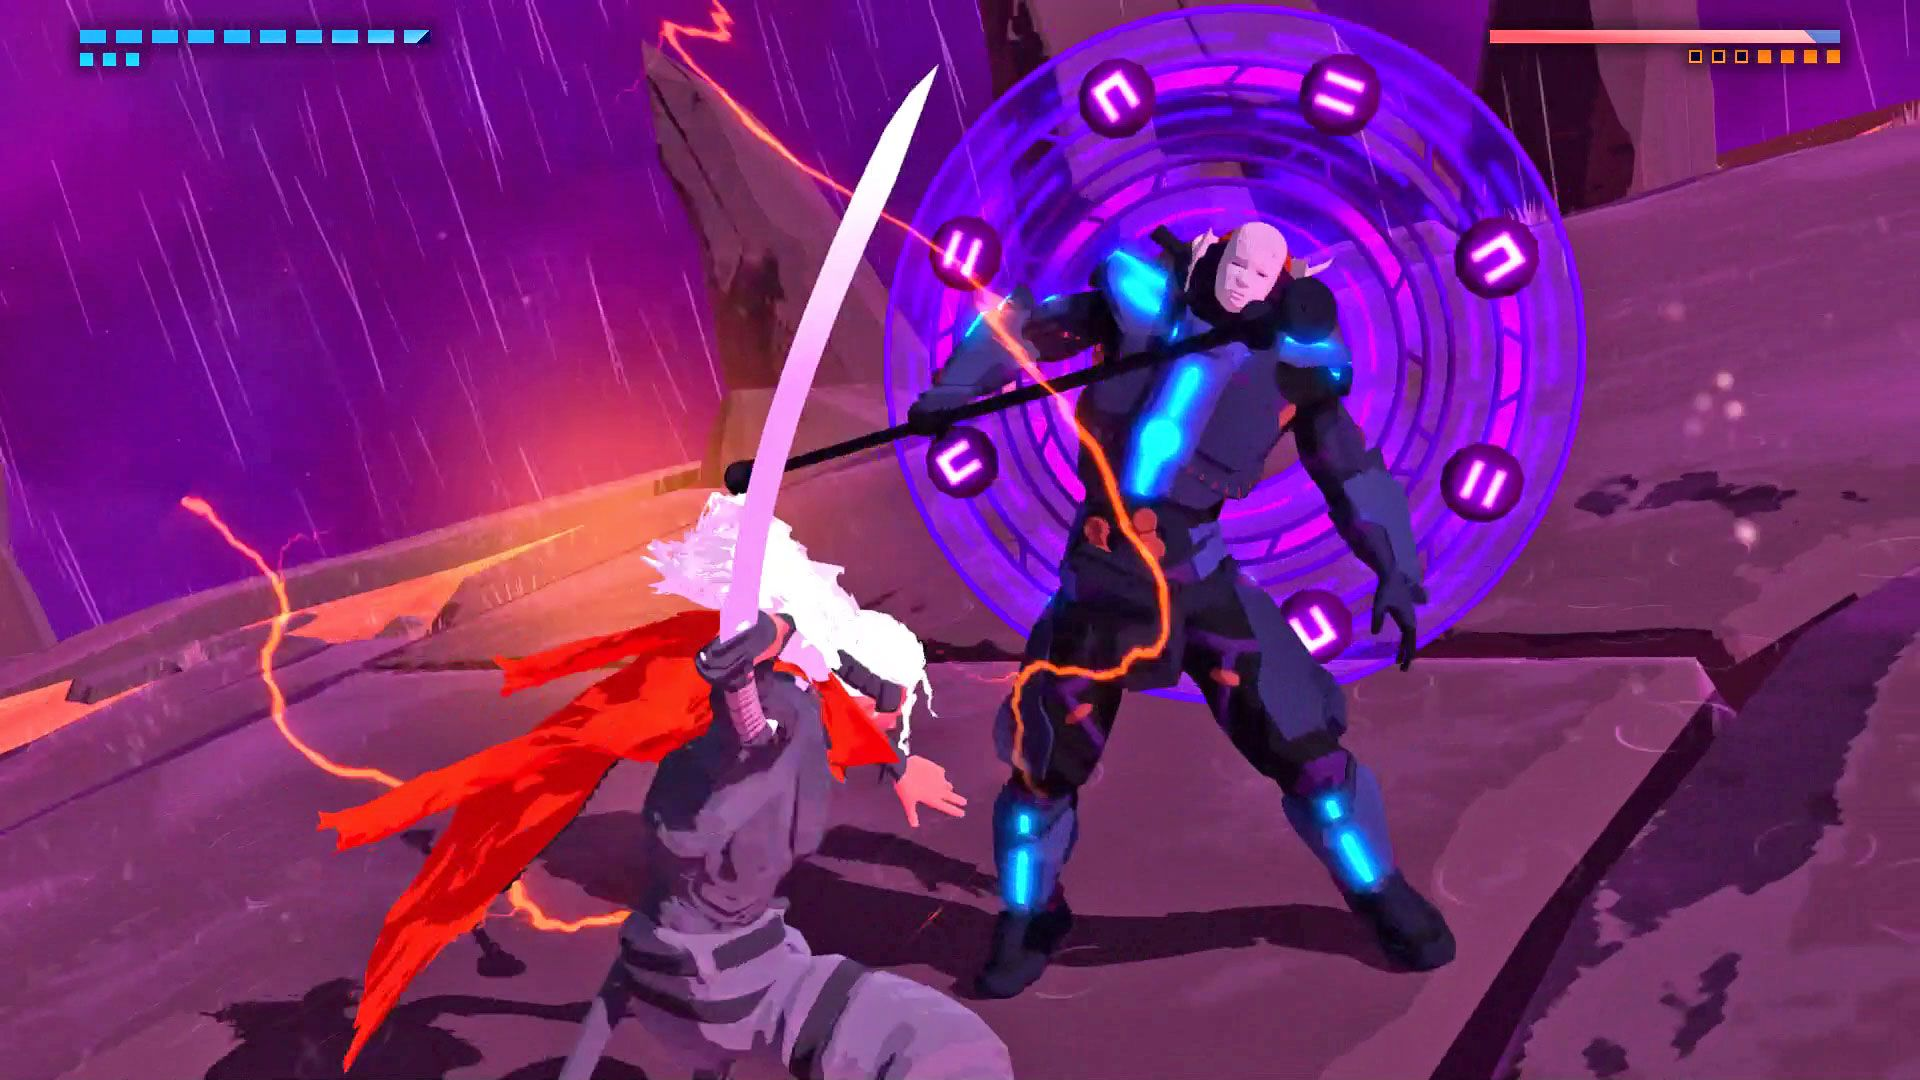 'Furi' brings its relentless fighting to the Xbox One in